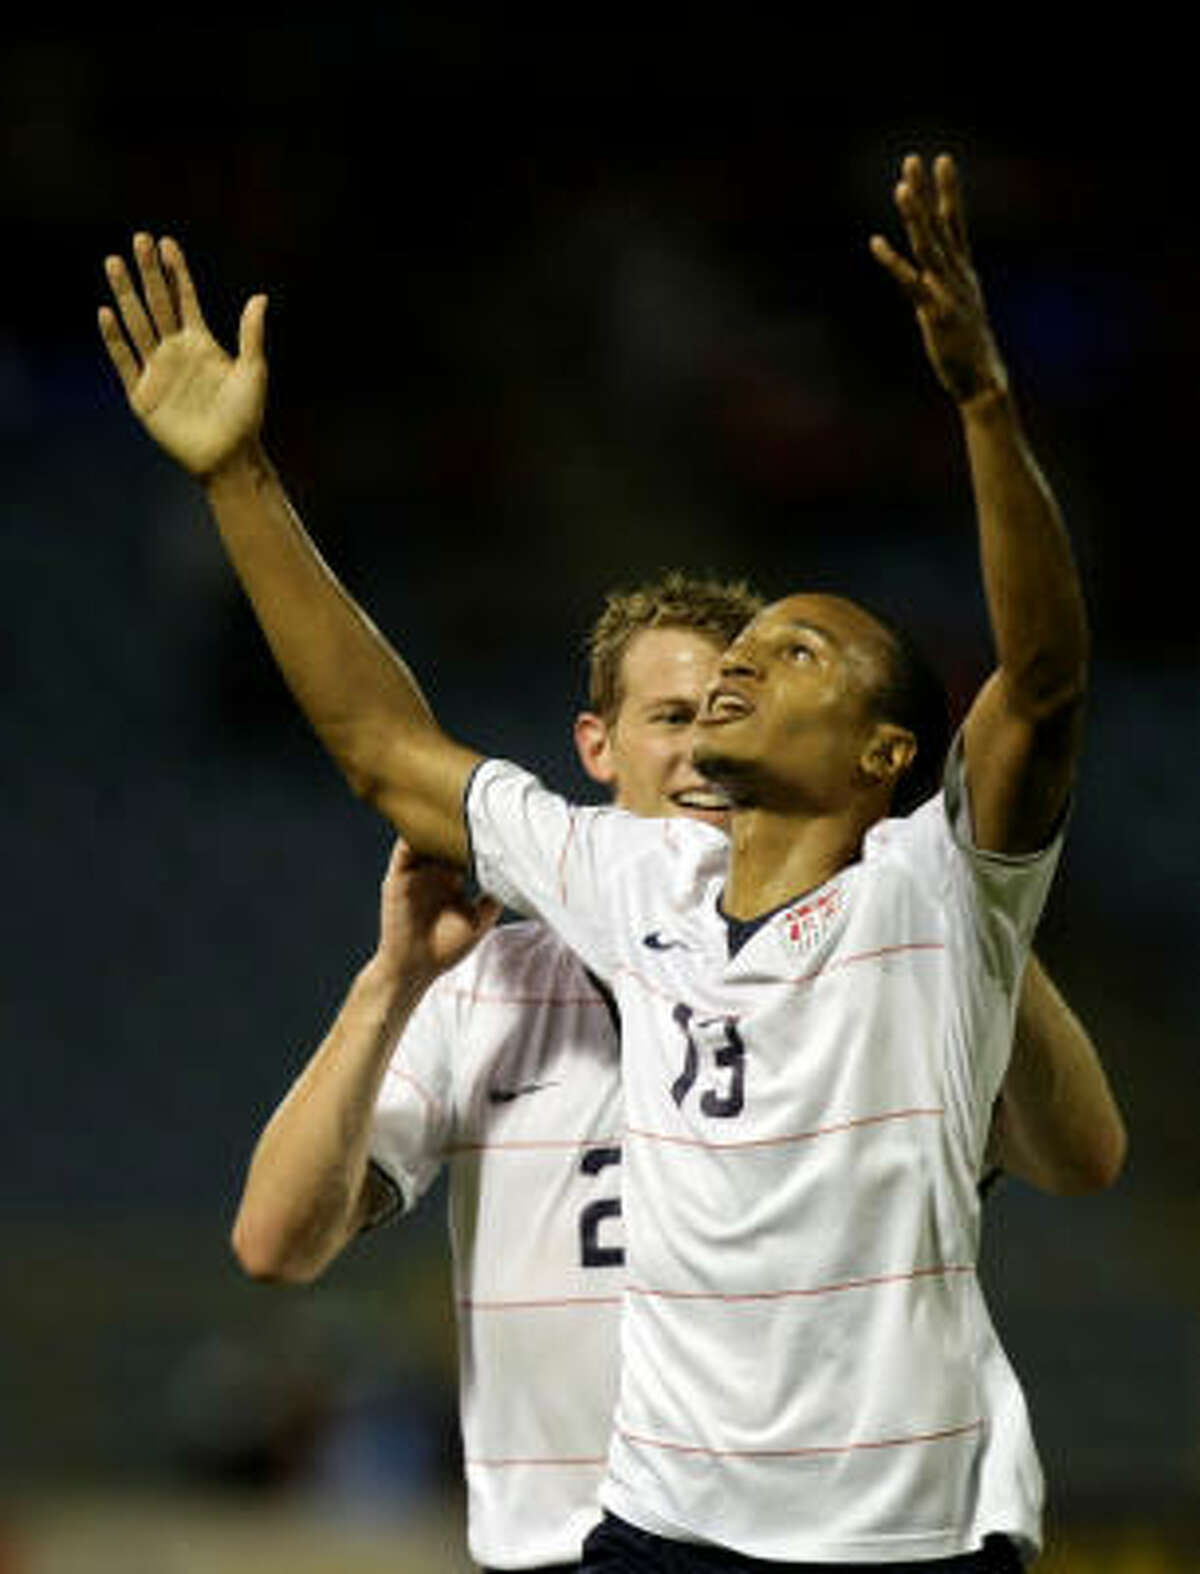 United States 1, Trinidad and Tobago 0 The Dynamo's own Ricardo Clark (13) celebrates scoring the game-winning goal, putting the U.S. a step closer to South Africa.